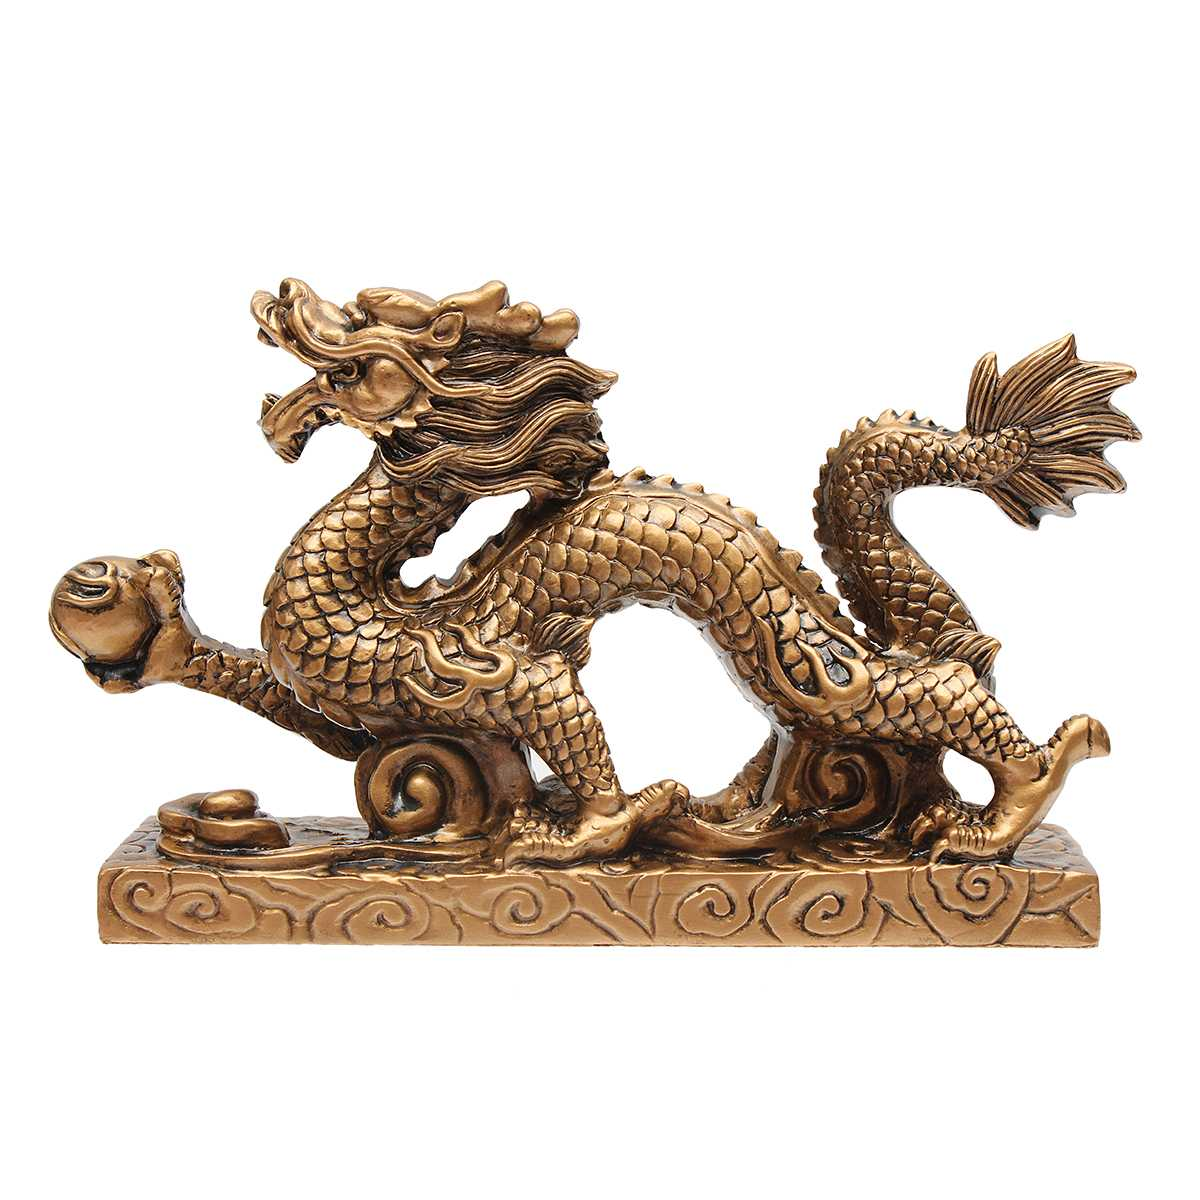 Lucky Gold Dragon Figurine Statue Ornaments Chinese Feng Shui Craft For Luck And Success Wealth Decoration Home Geomancy Gift